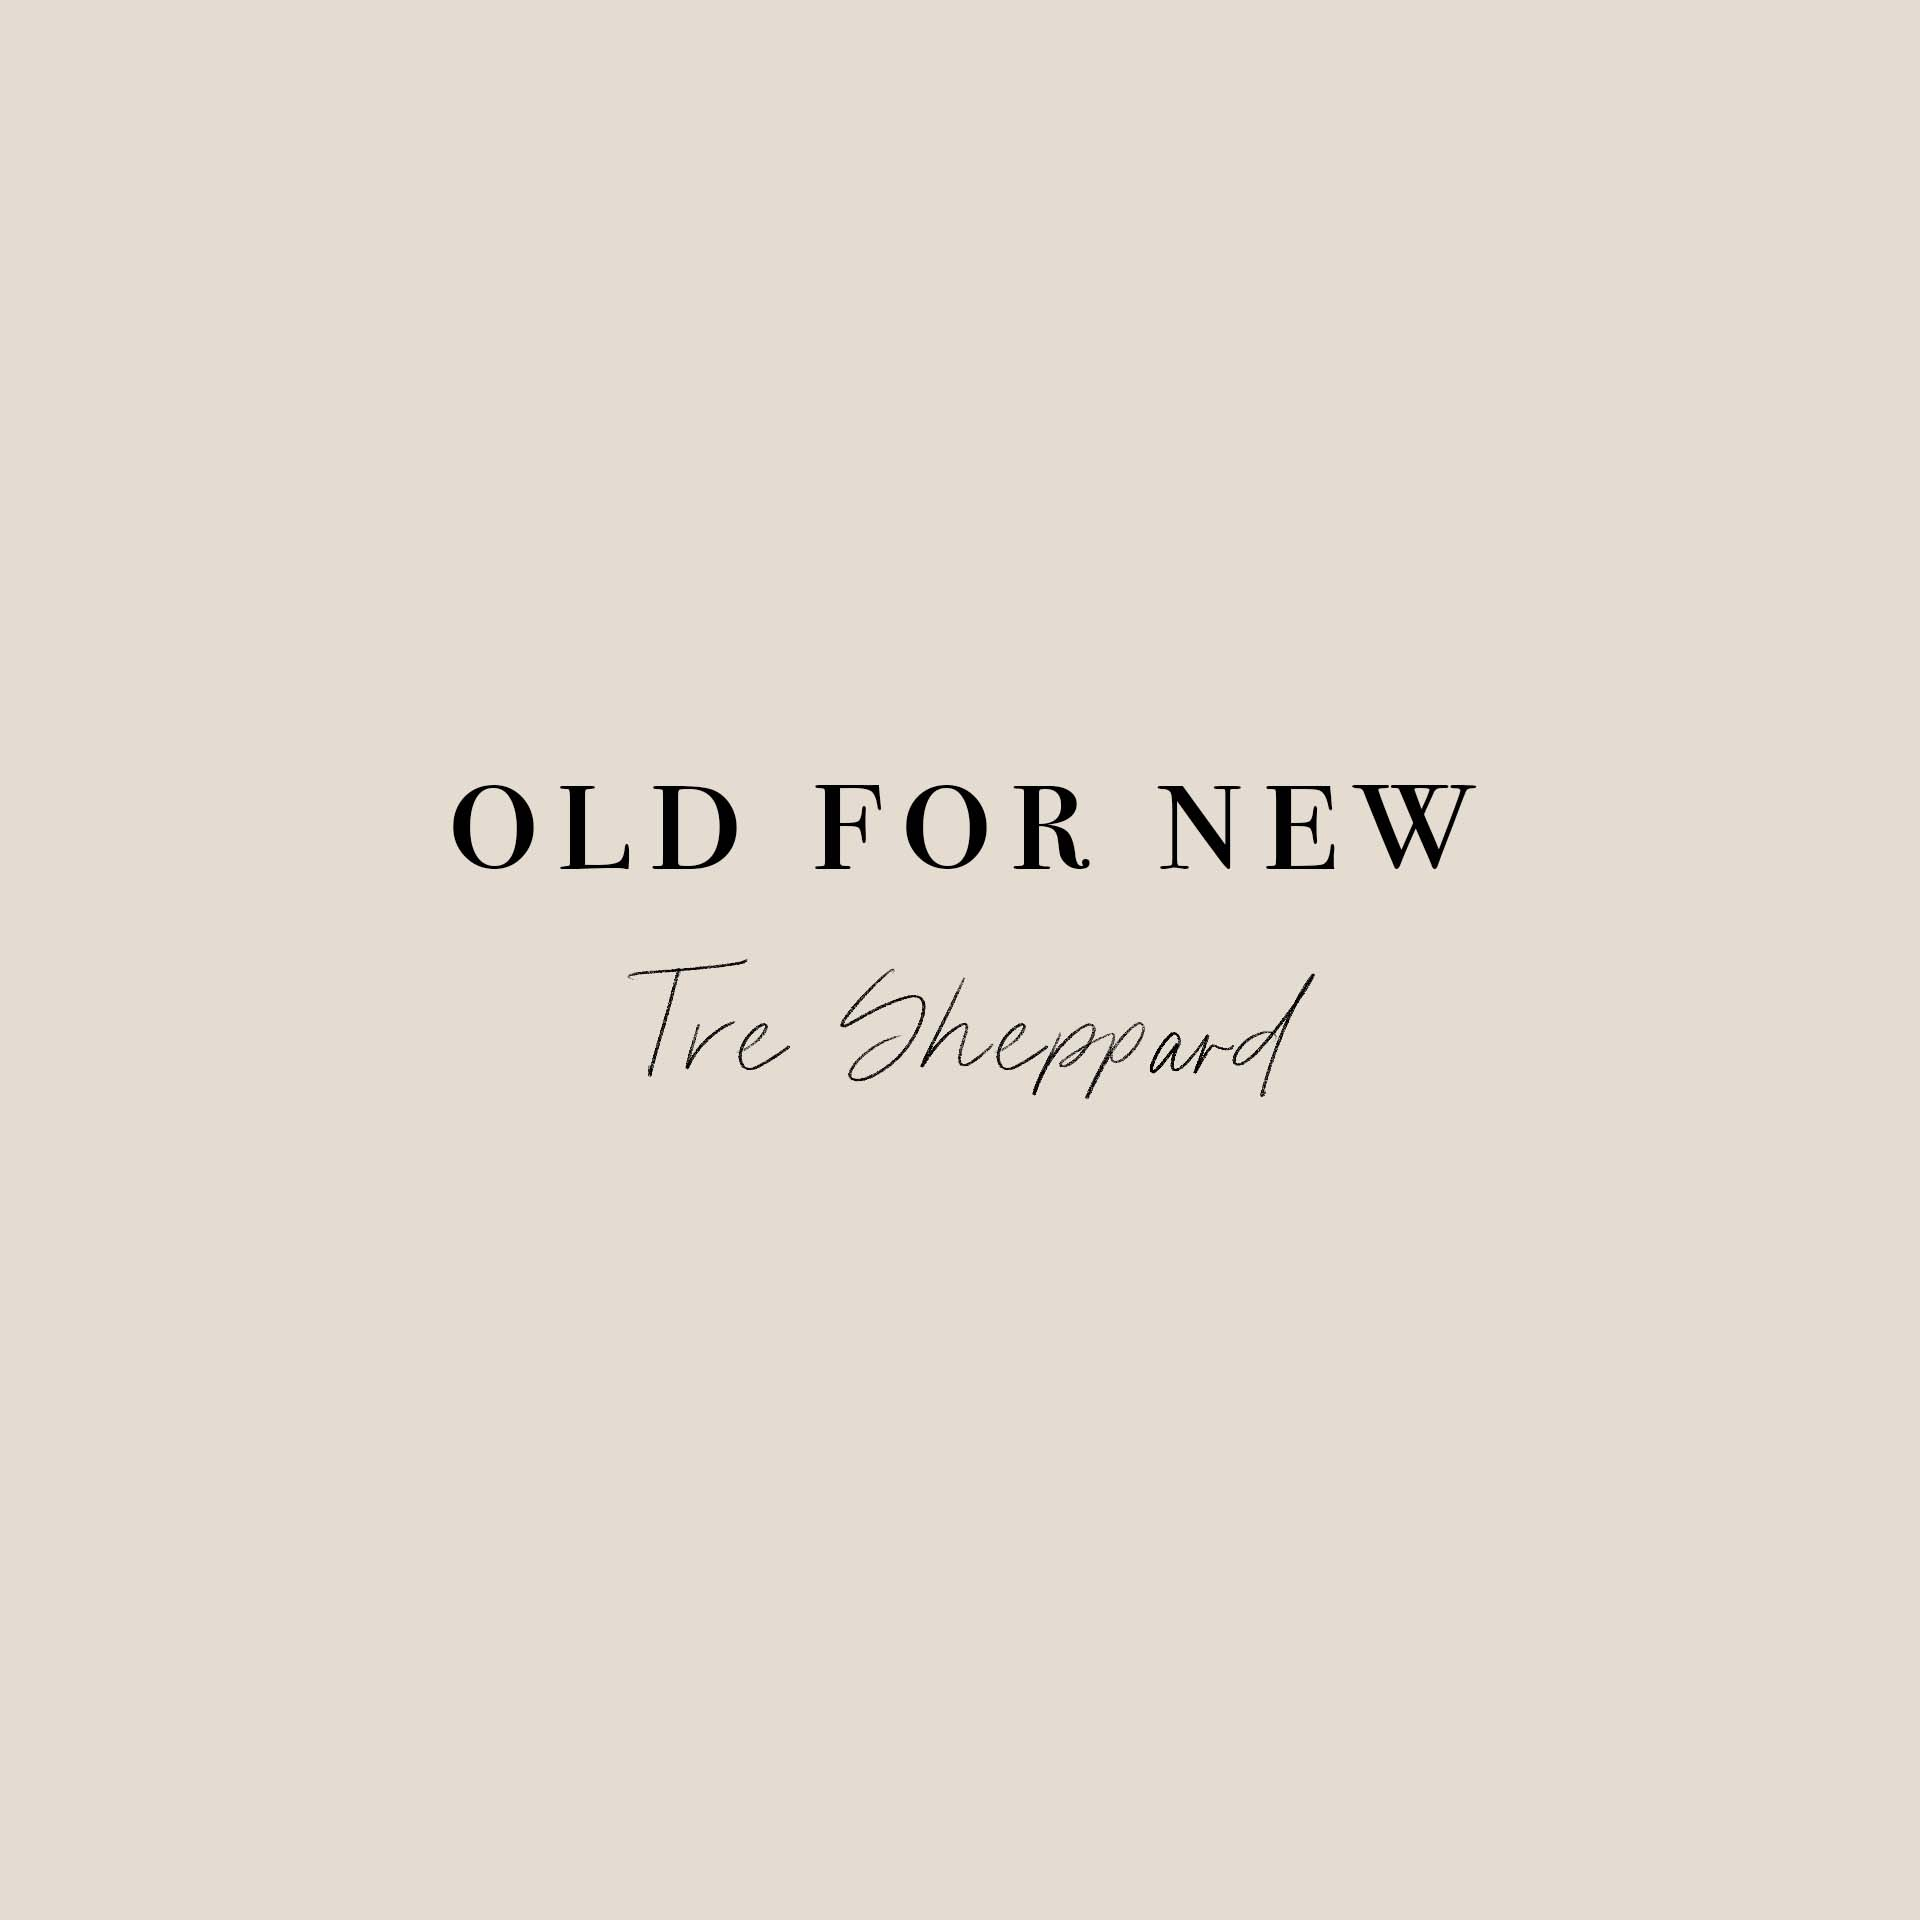 Old for New     Tre takes an in depth look at Hebrews 1 and how we can trade our old lives for the new life of Jesus in all that we do.